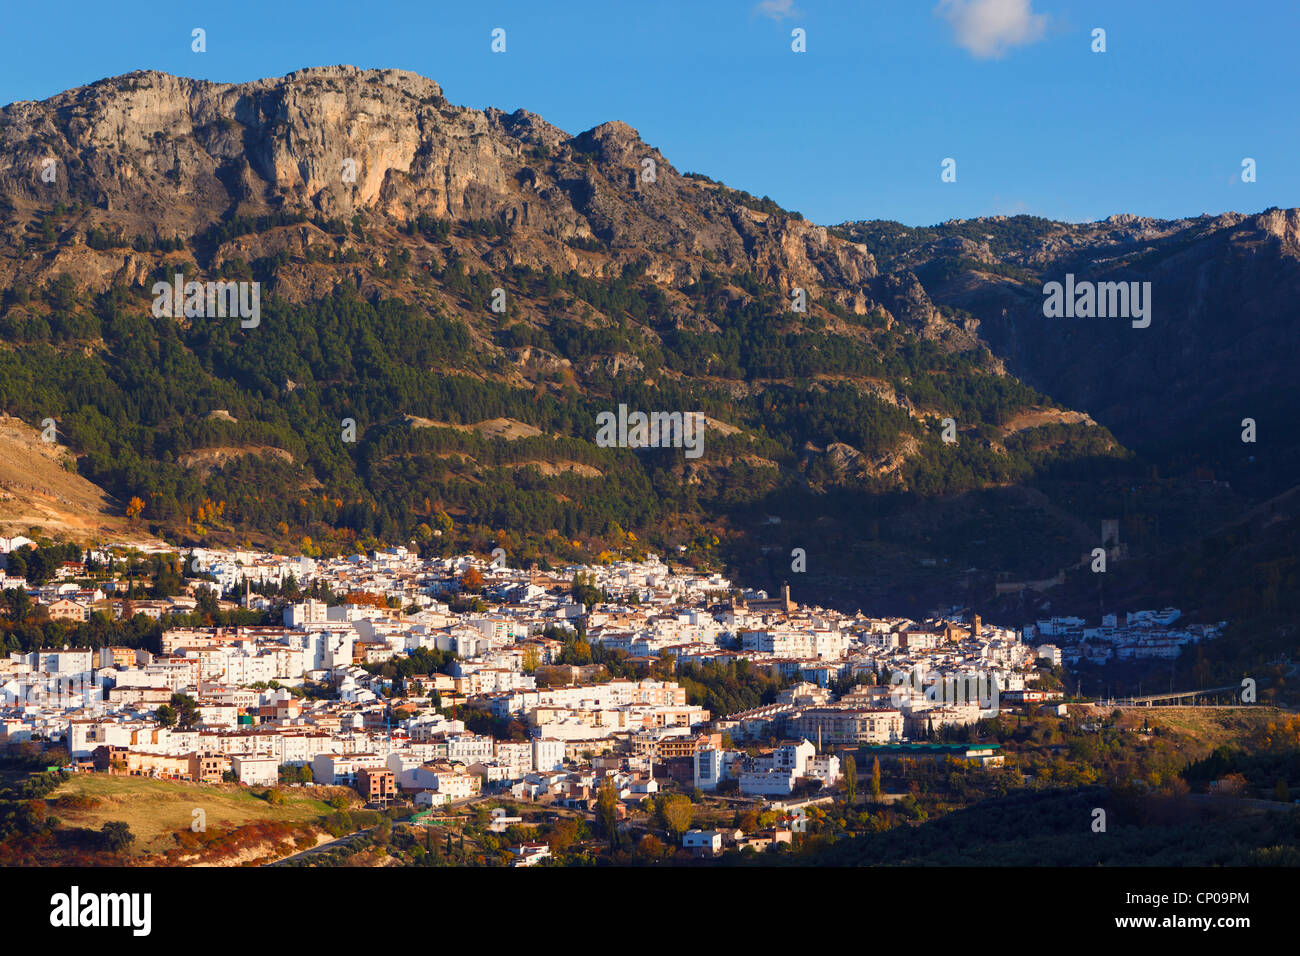 Cazorla, Jaen Province, Andalusia, southern Spain. - Stock Image